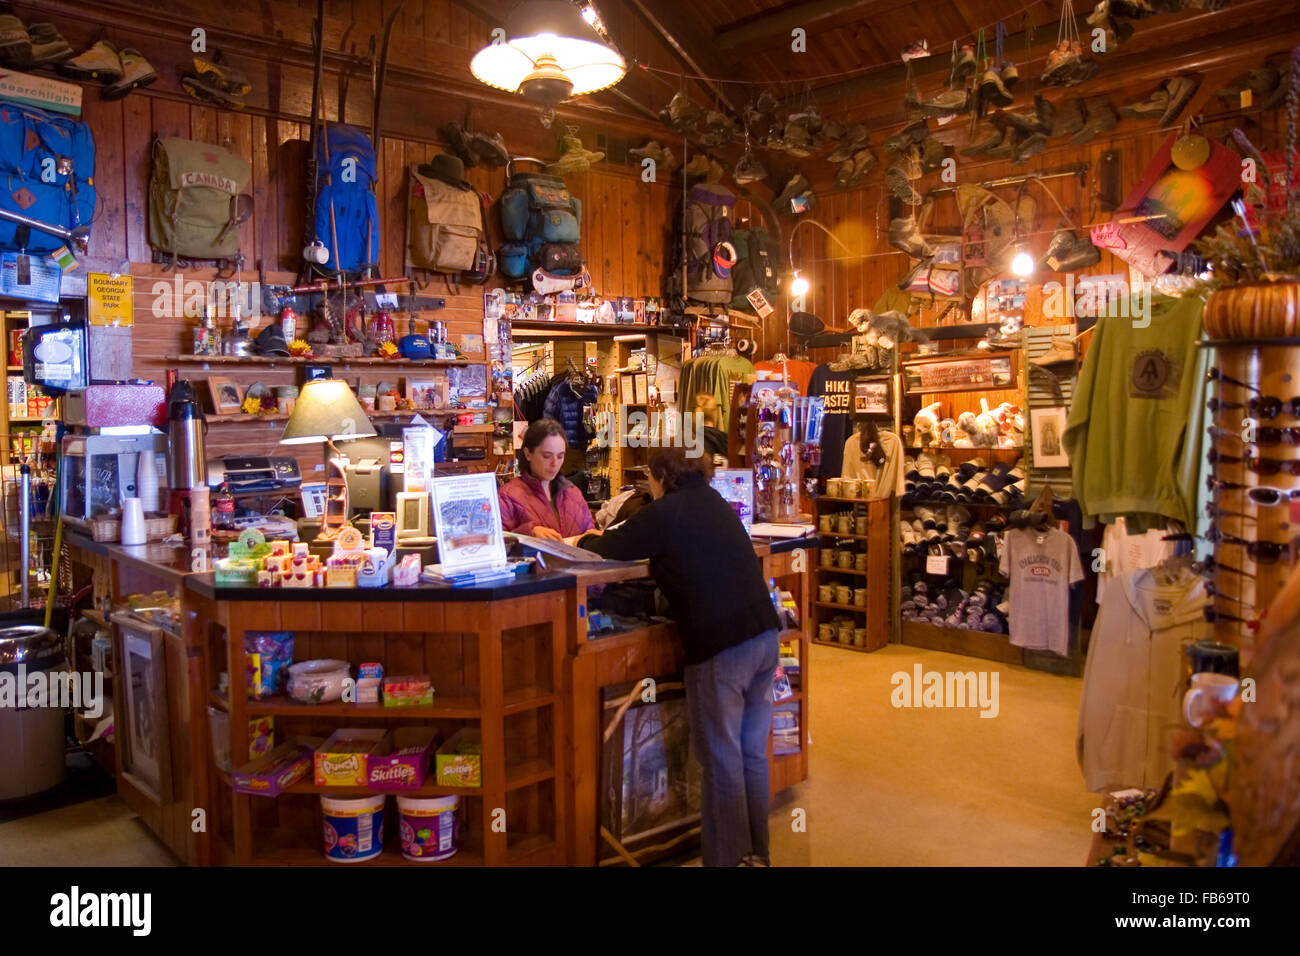 A store along the Appalachian Trail where hikers get their supplies, Neel's Gap, North Georgia, USA - Stock Image